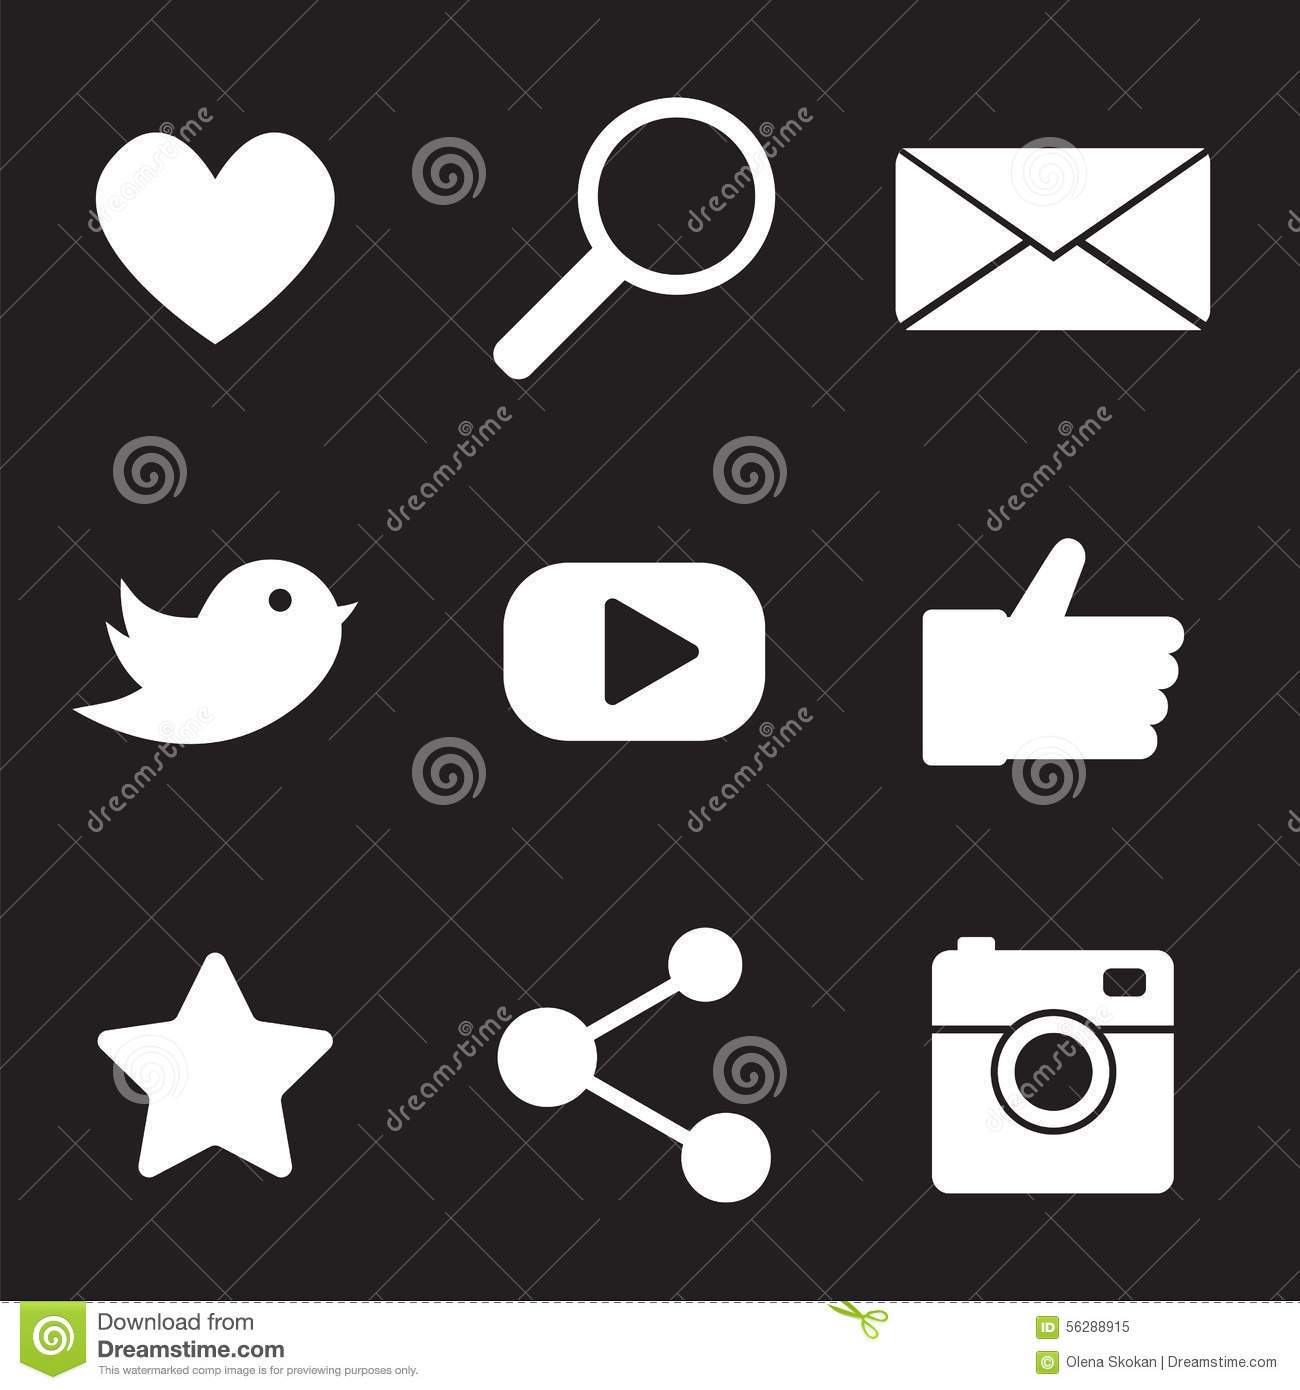 Information Technology Flat Icon Set Vector Illustration